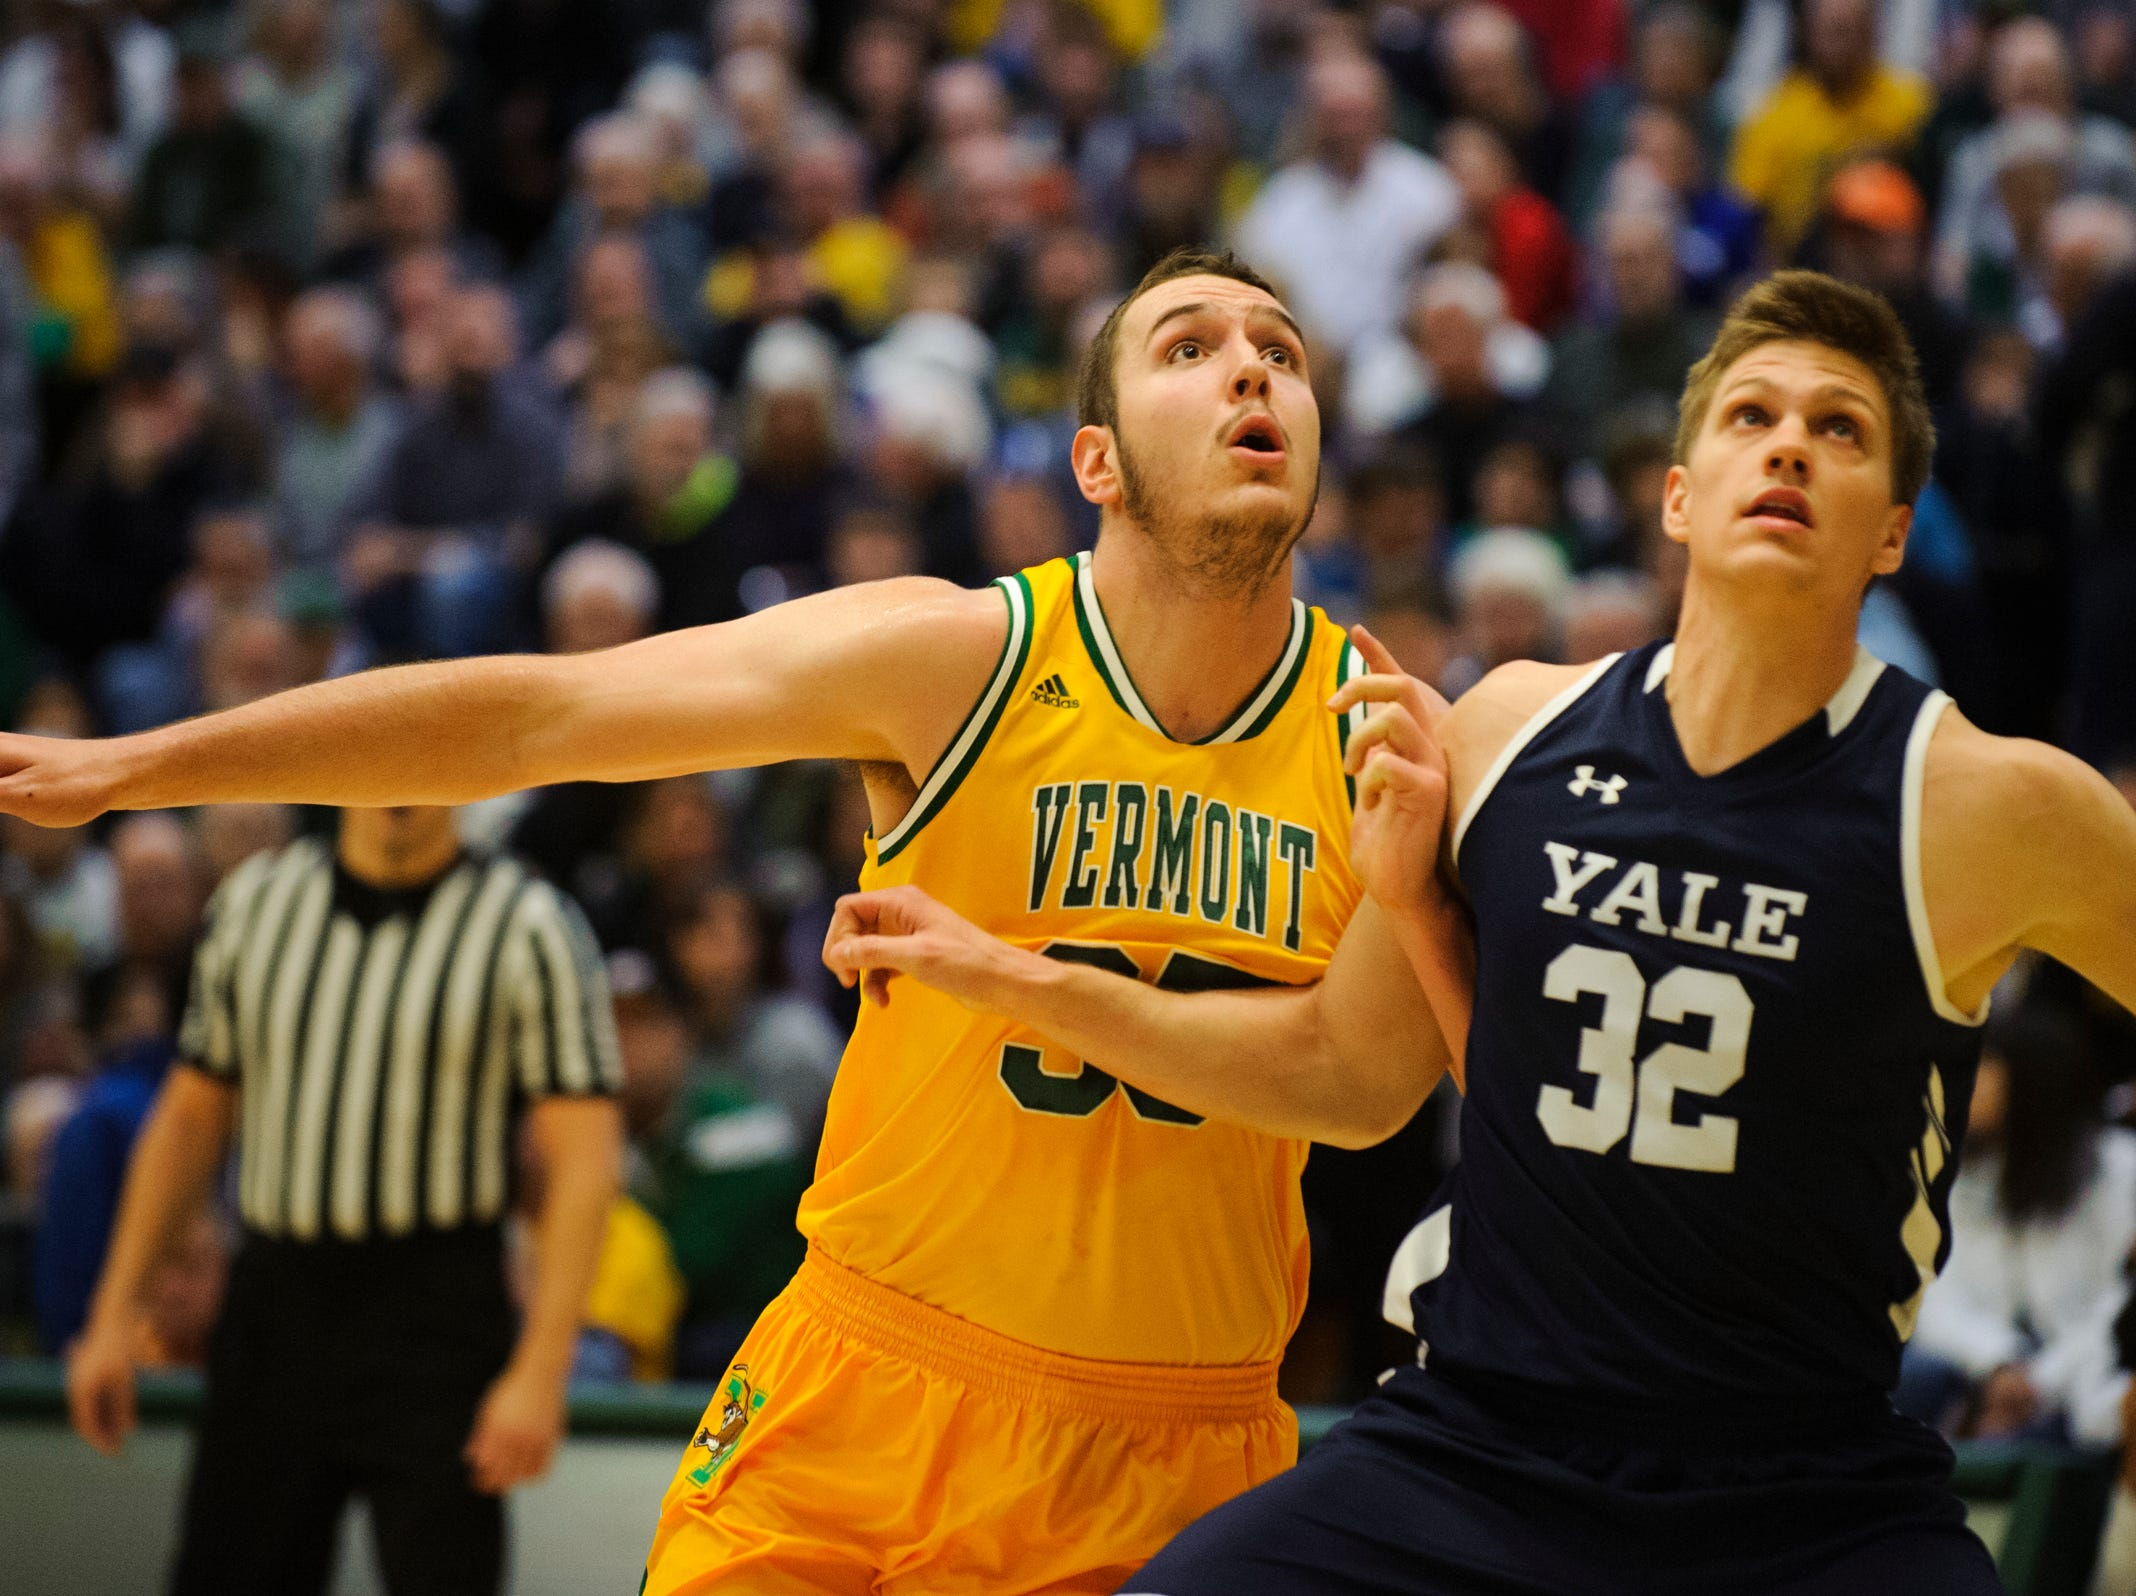 Vermont forward Ryan Davis (35) and Yale's Blake Reynolds (32) battle for position during a free throw attempt during the men's basketball game between the Yale Bulldogs and the Vermont Catamounts at Patrick Gym on Wednesday night November 21, 2018 in Burlington.